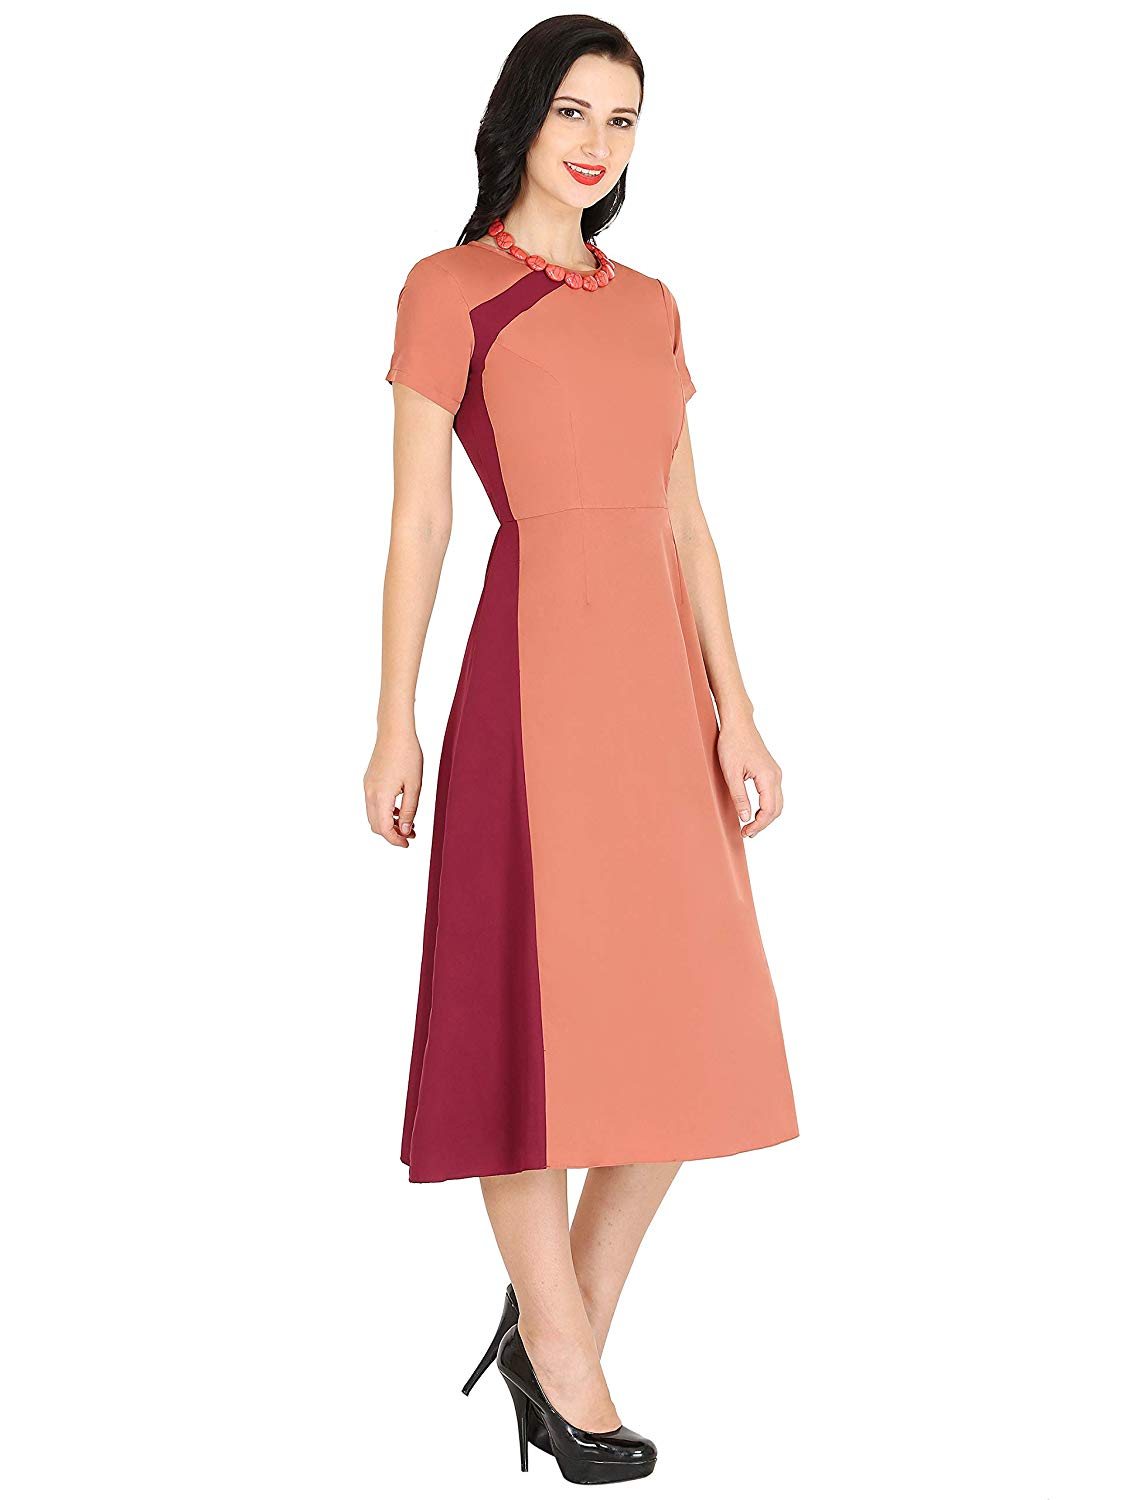 8 Dresses For Women : Party Dresses Under Rs. 8 Will be